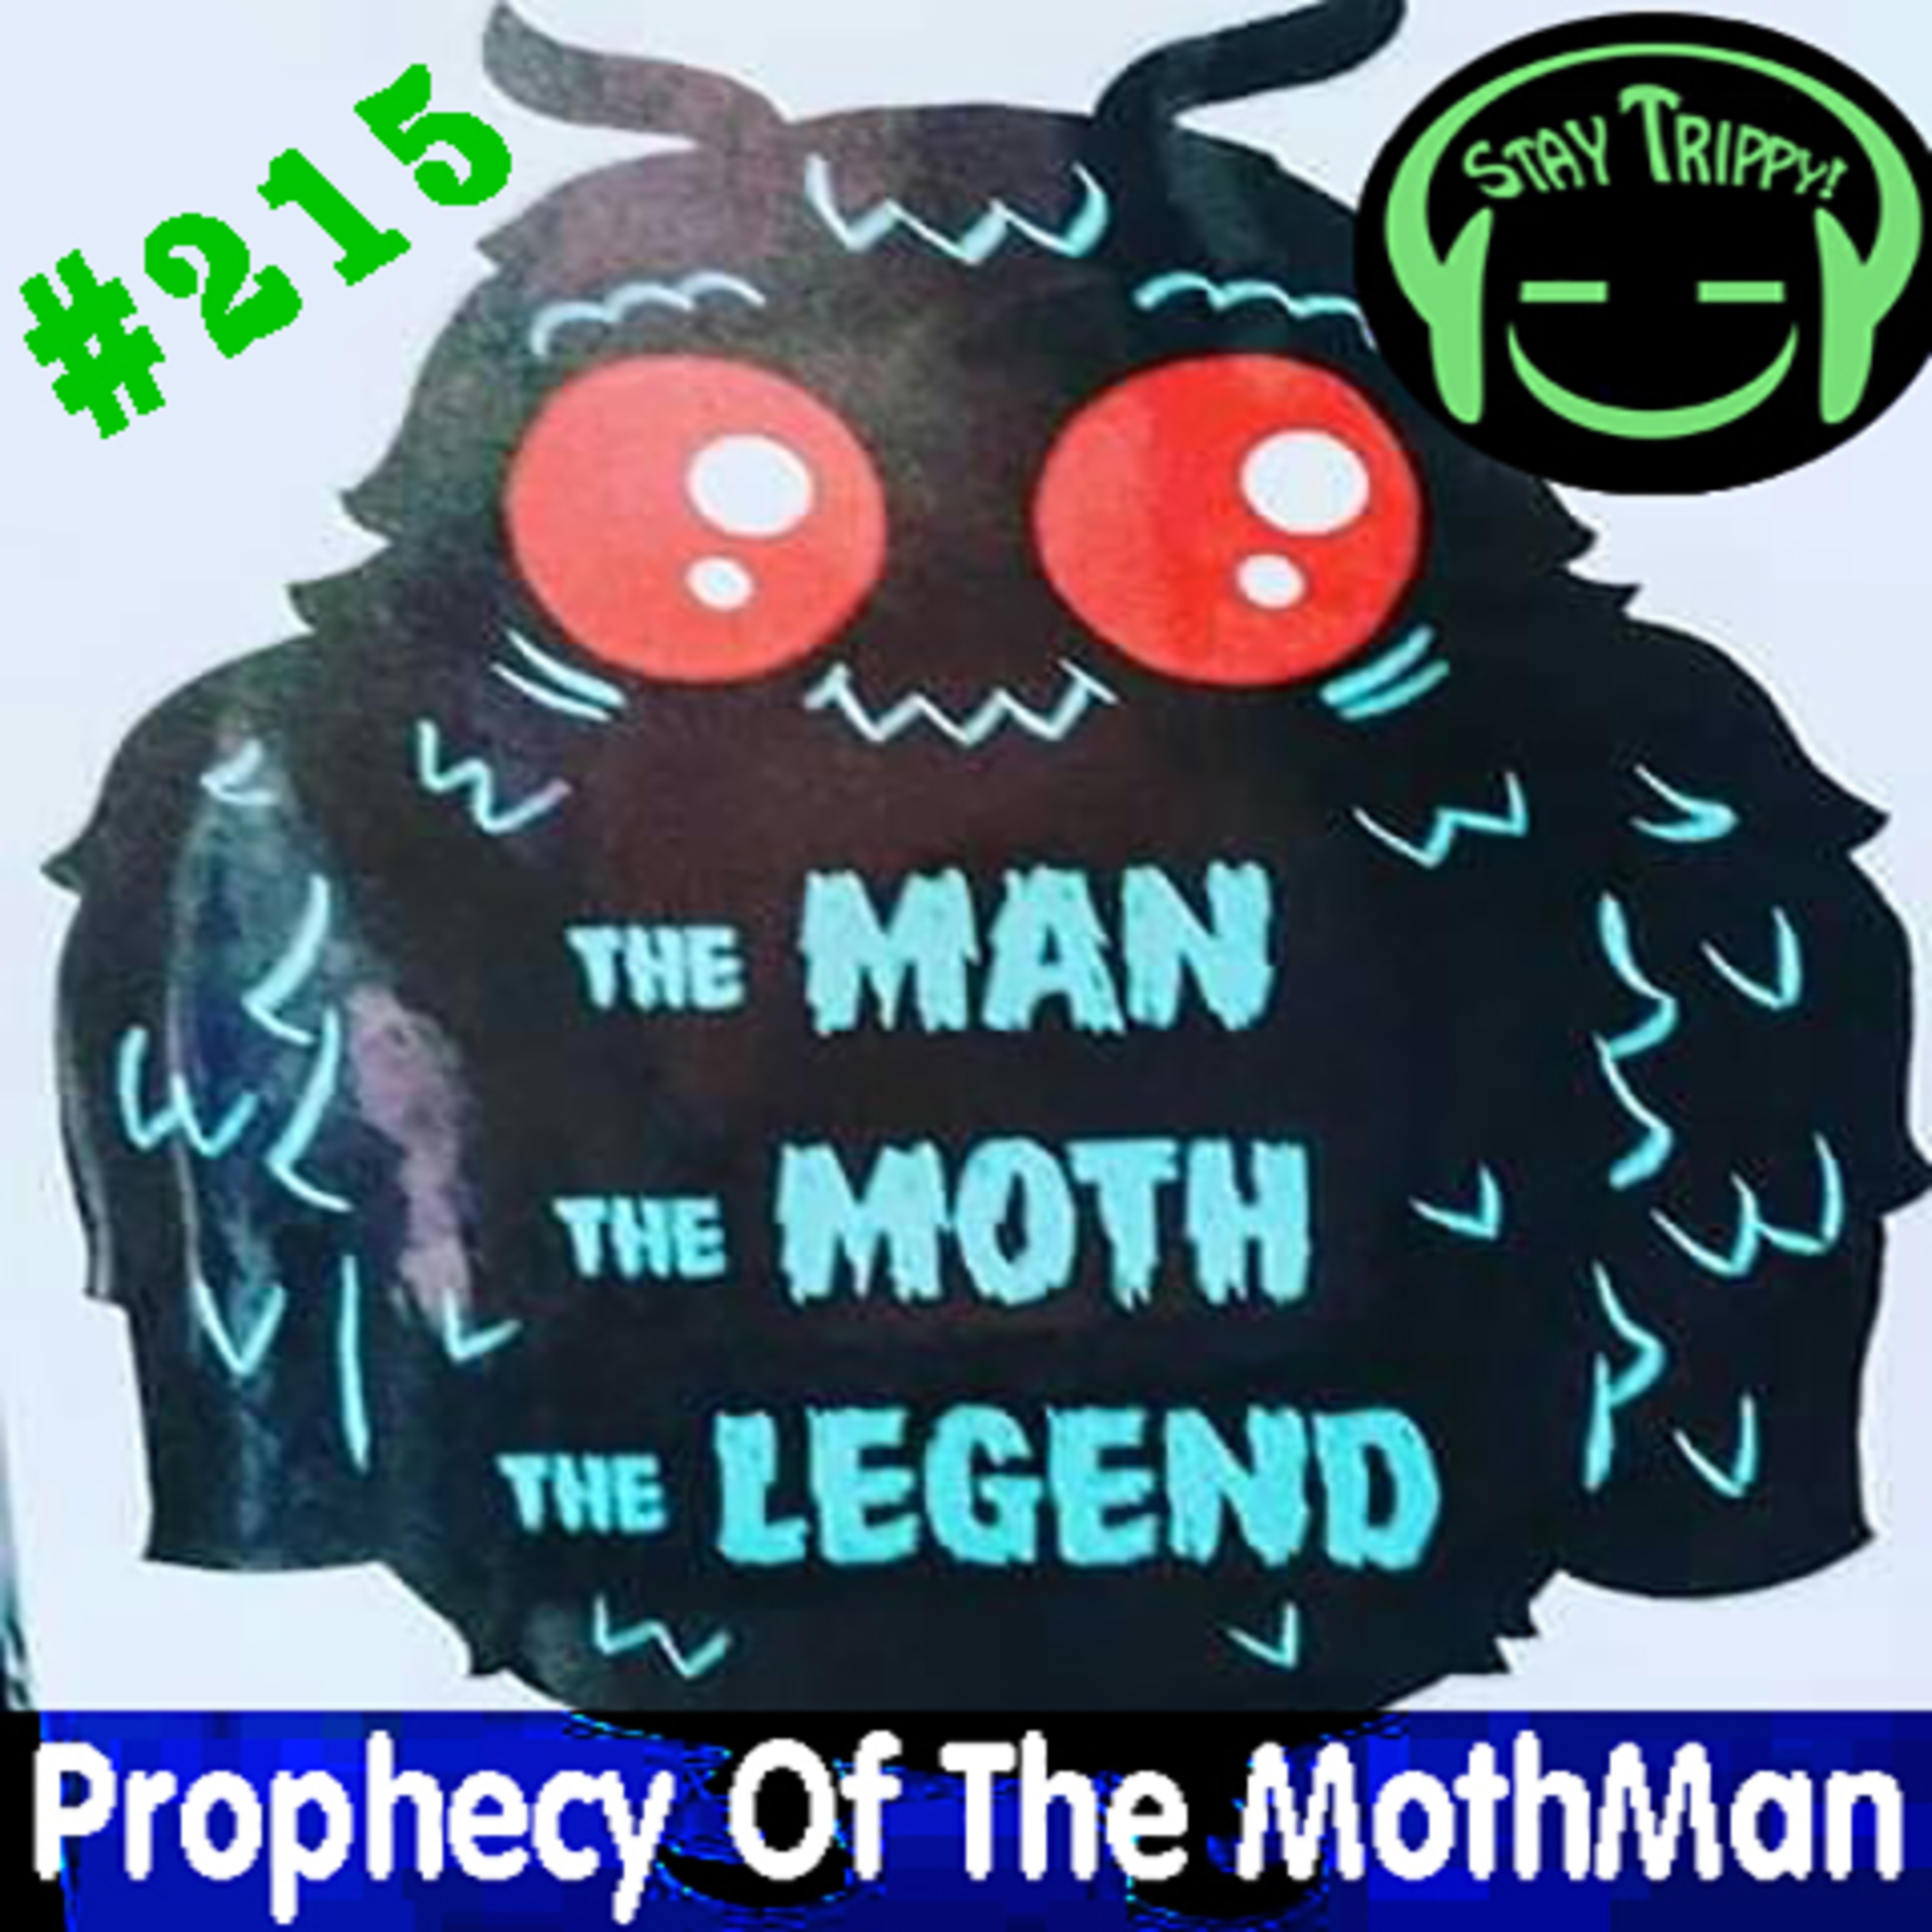 LST 215 The Man, The Moth, The Legend